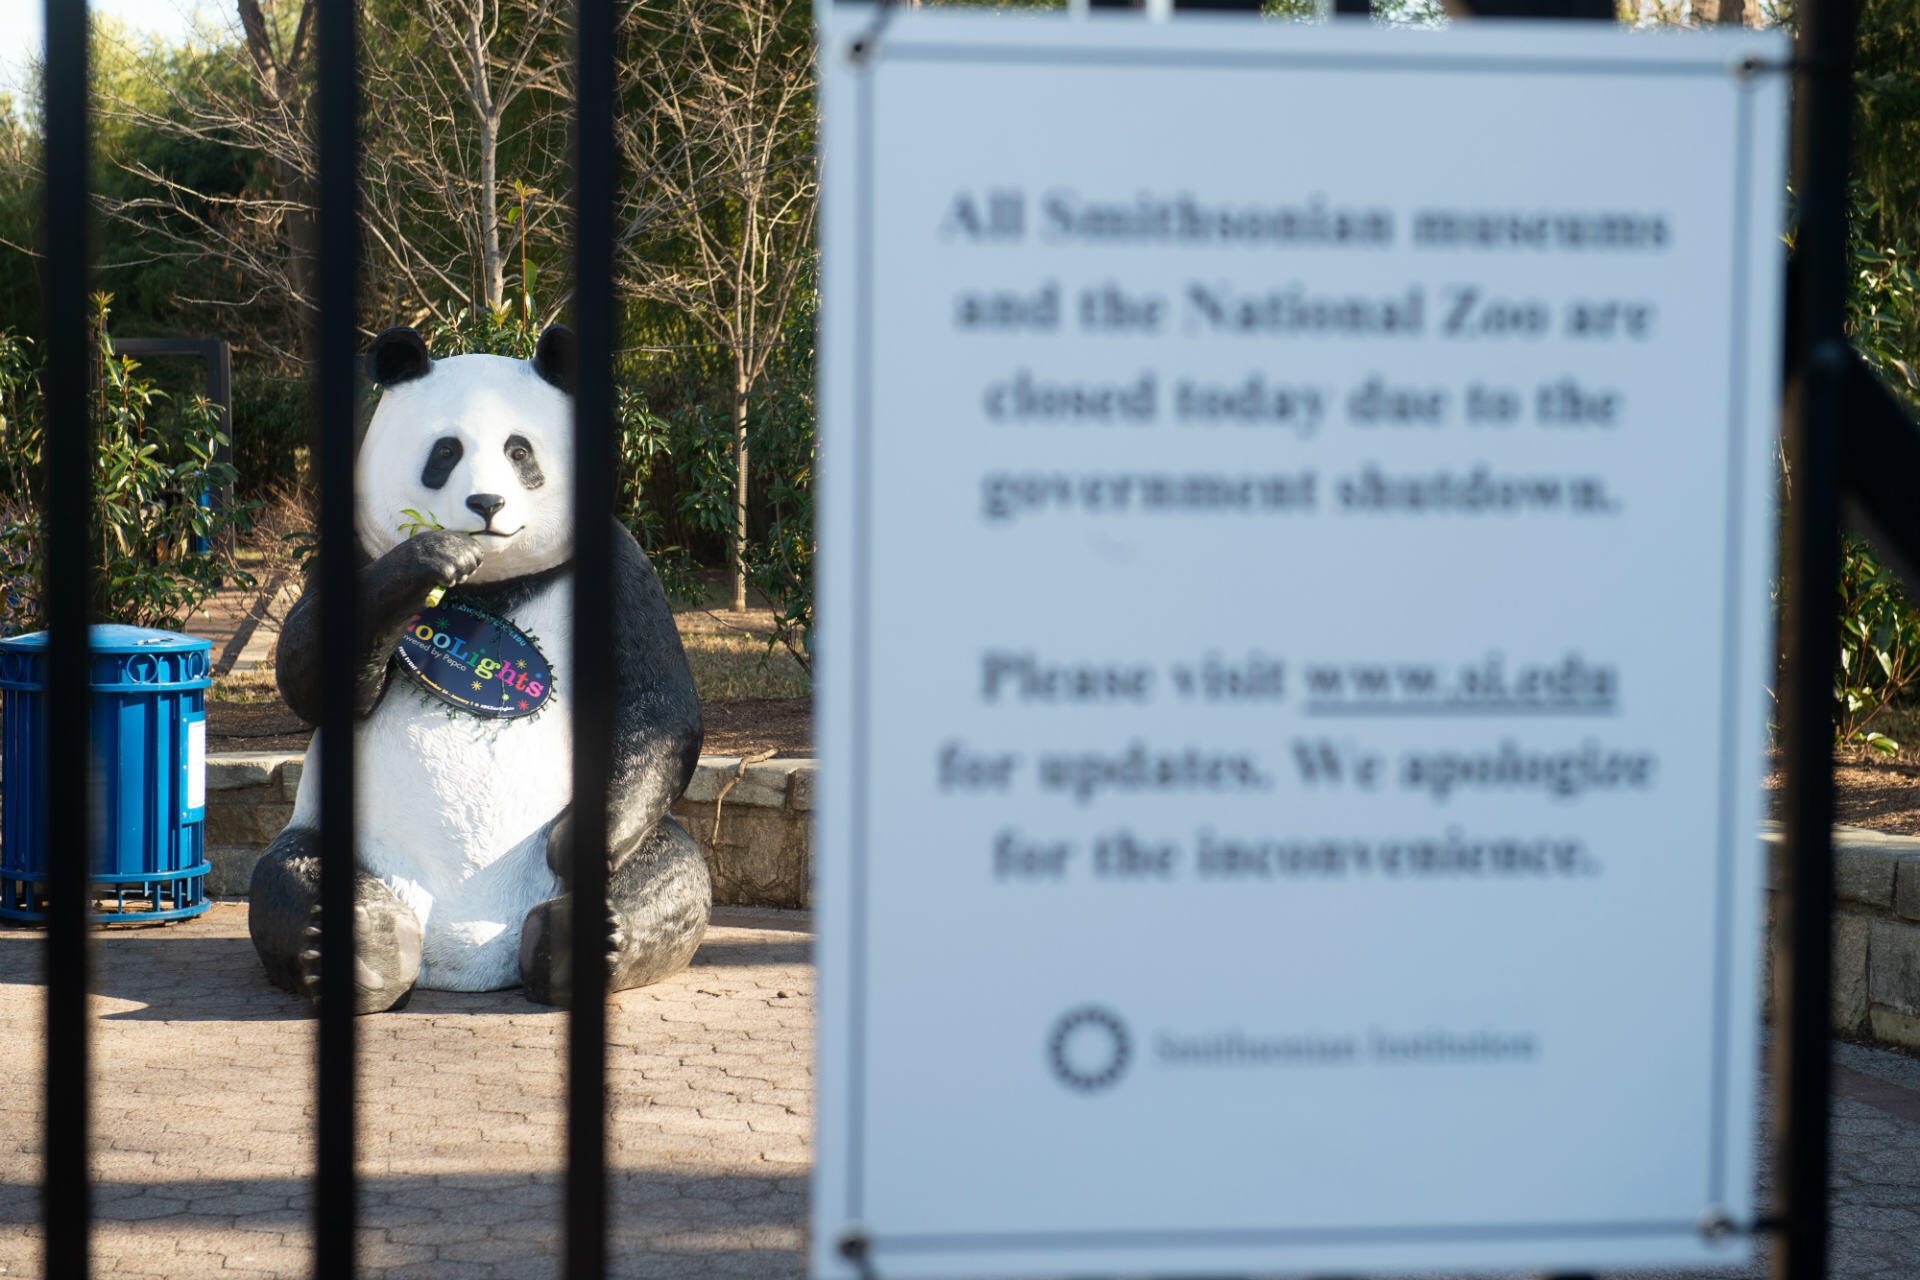 A sign at the entrance of the Smithsonian National Zoo in Washington, DC, closed due to the government shutdown, on January 11, 2019. On Thursday, two bills aimed at ending the six-week-old crisis – one that included funding for President Donald Trump's contentious $5.7 billion US-Mexico border wall and another Democrat-backed measure that did not – failed in the Senate, sending lawmakers back to the drawing board.